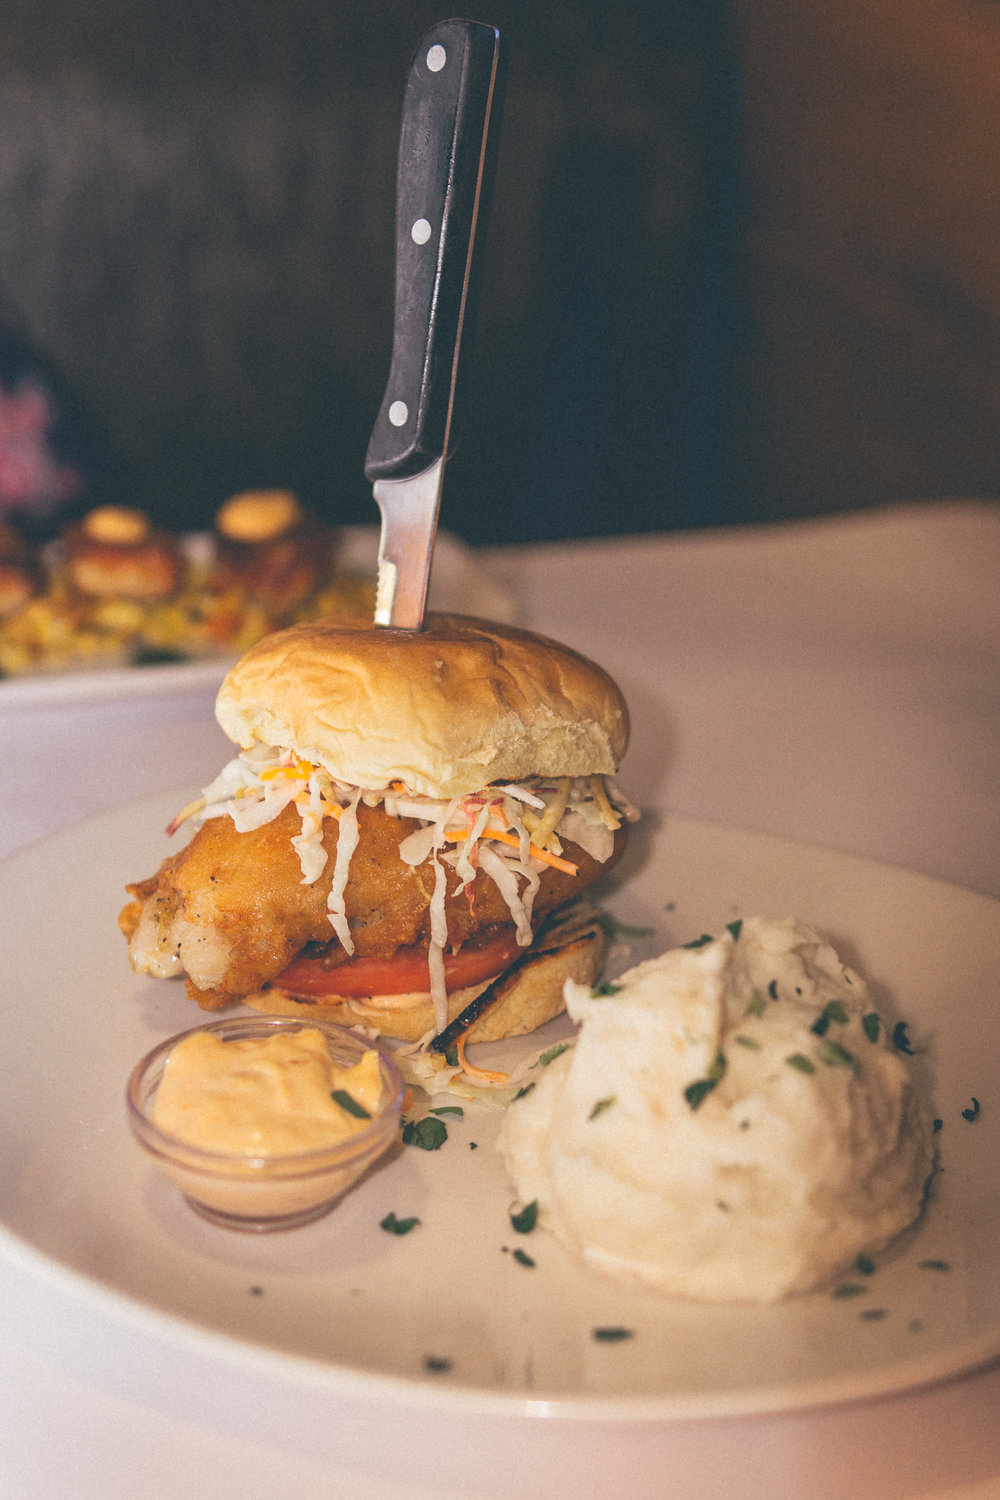 Bangin' BFG Sandwich: Fresh fish fillet, dressed with Bang Bang sauce, house-made coleslaw & a tomato slice.